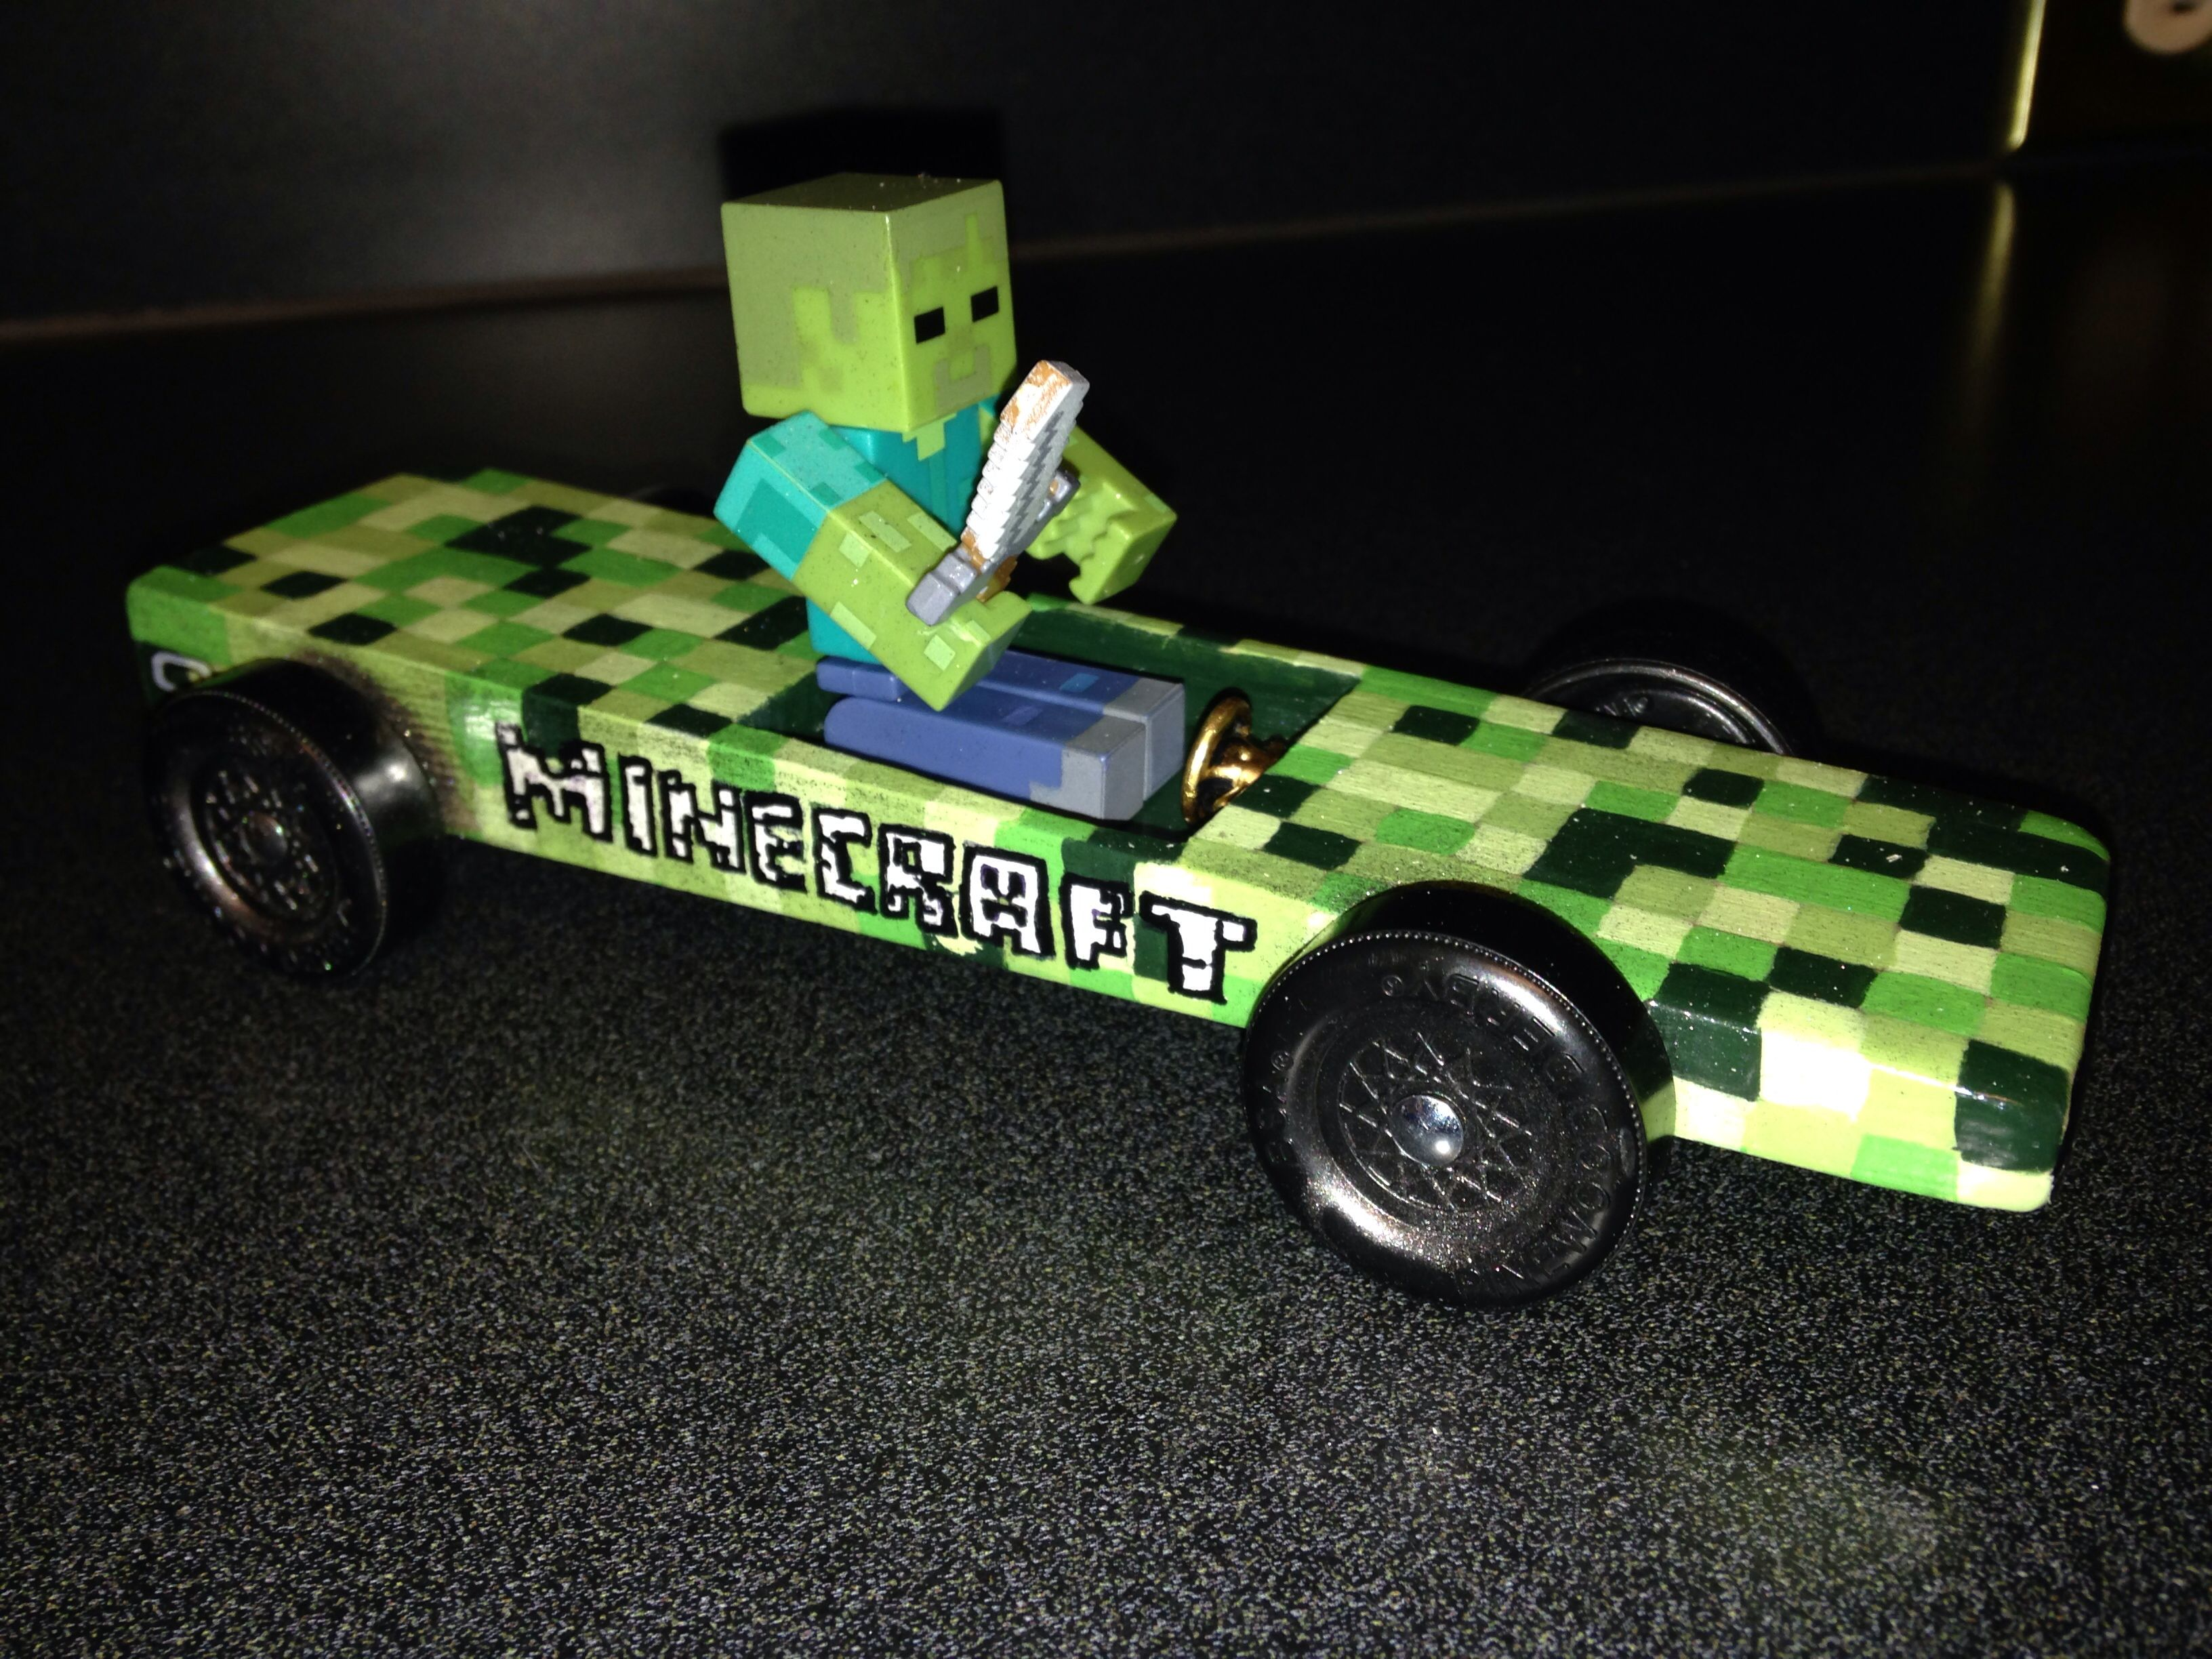 Mine craft Pinewood Derby | CubScouts | Pinterest ...